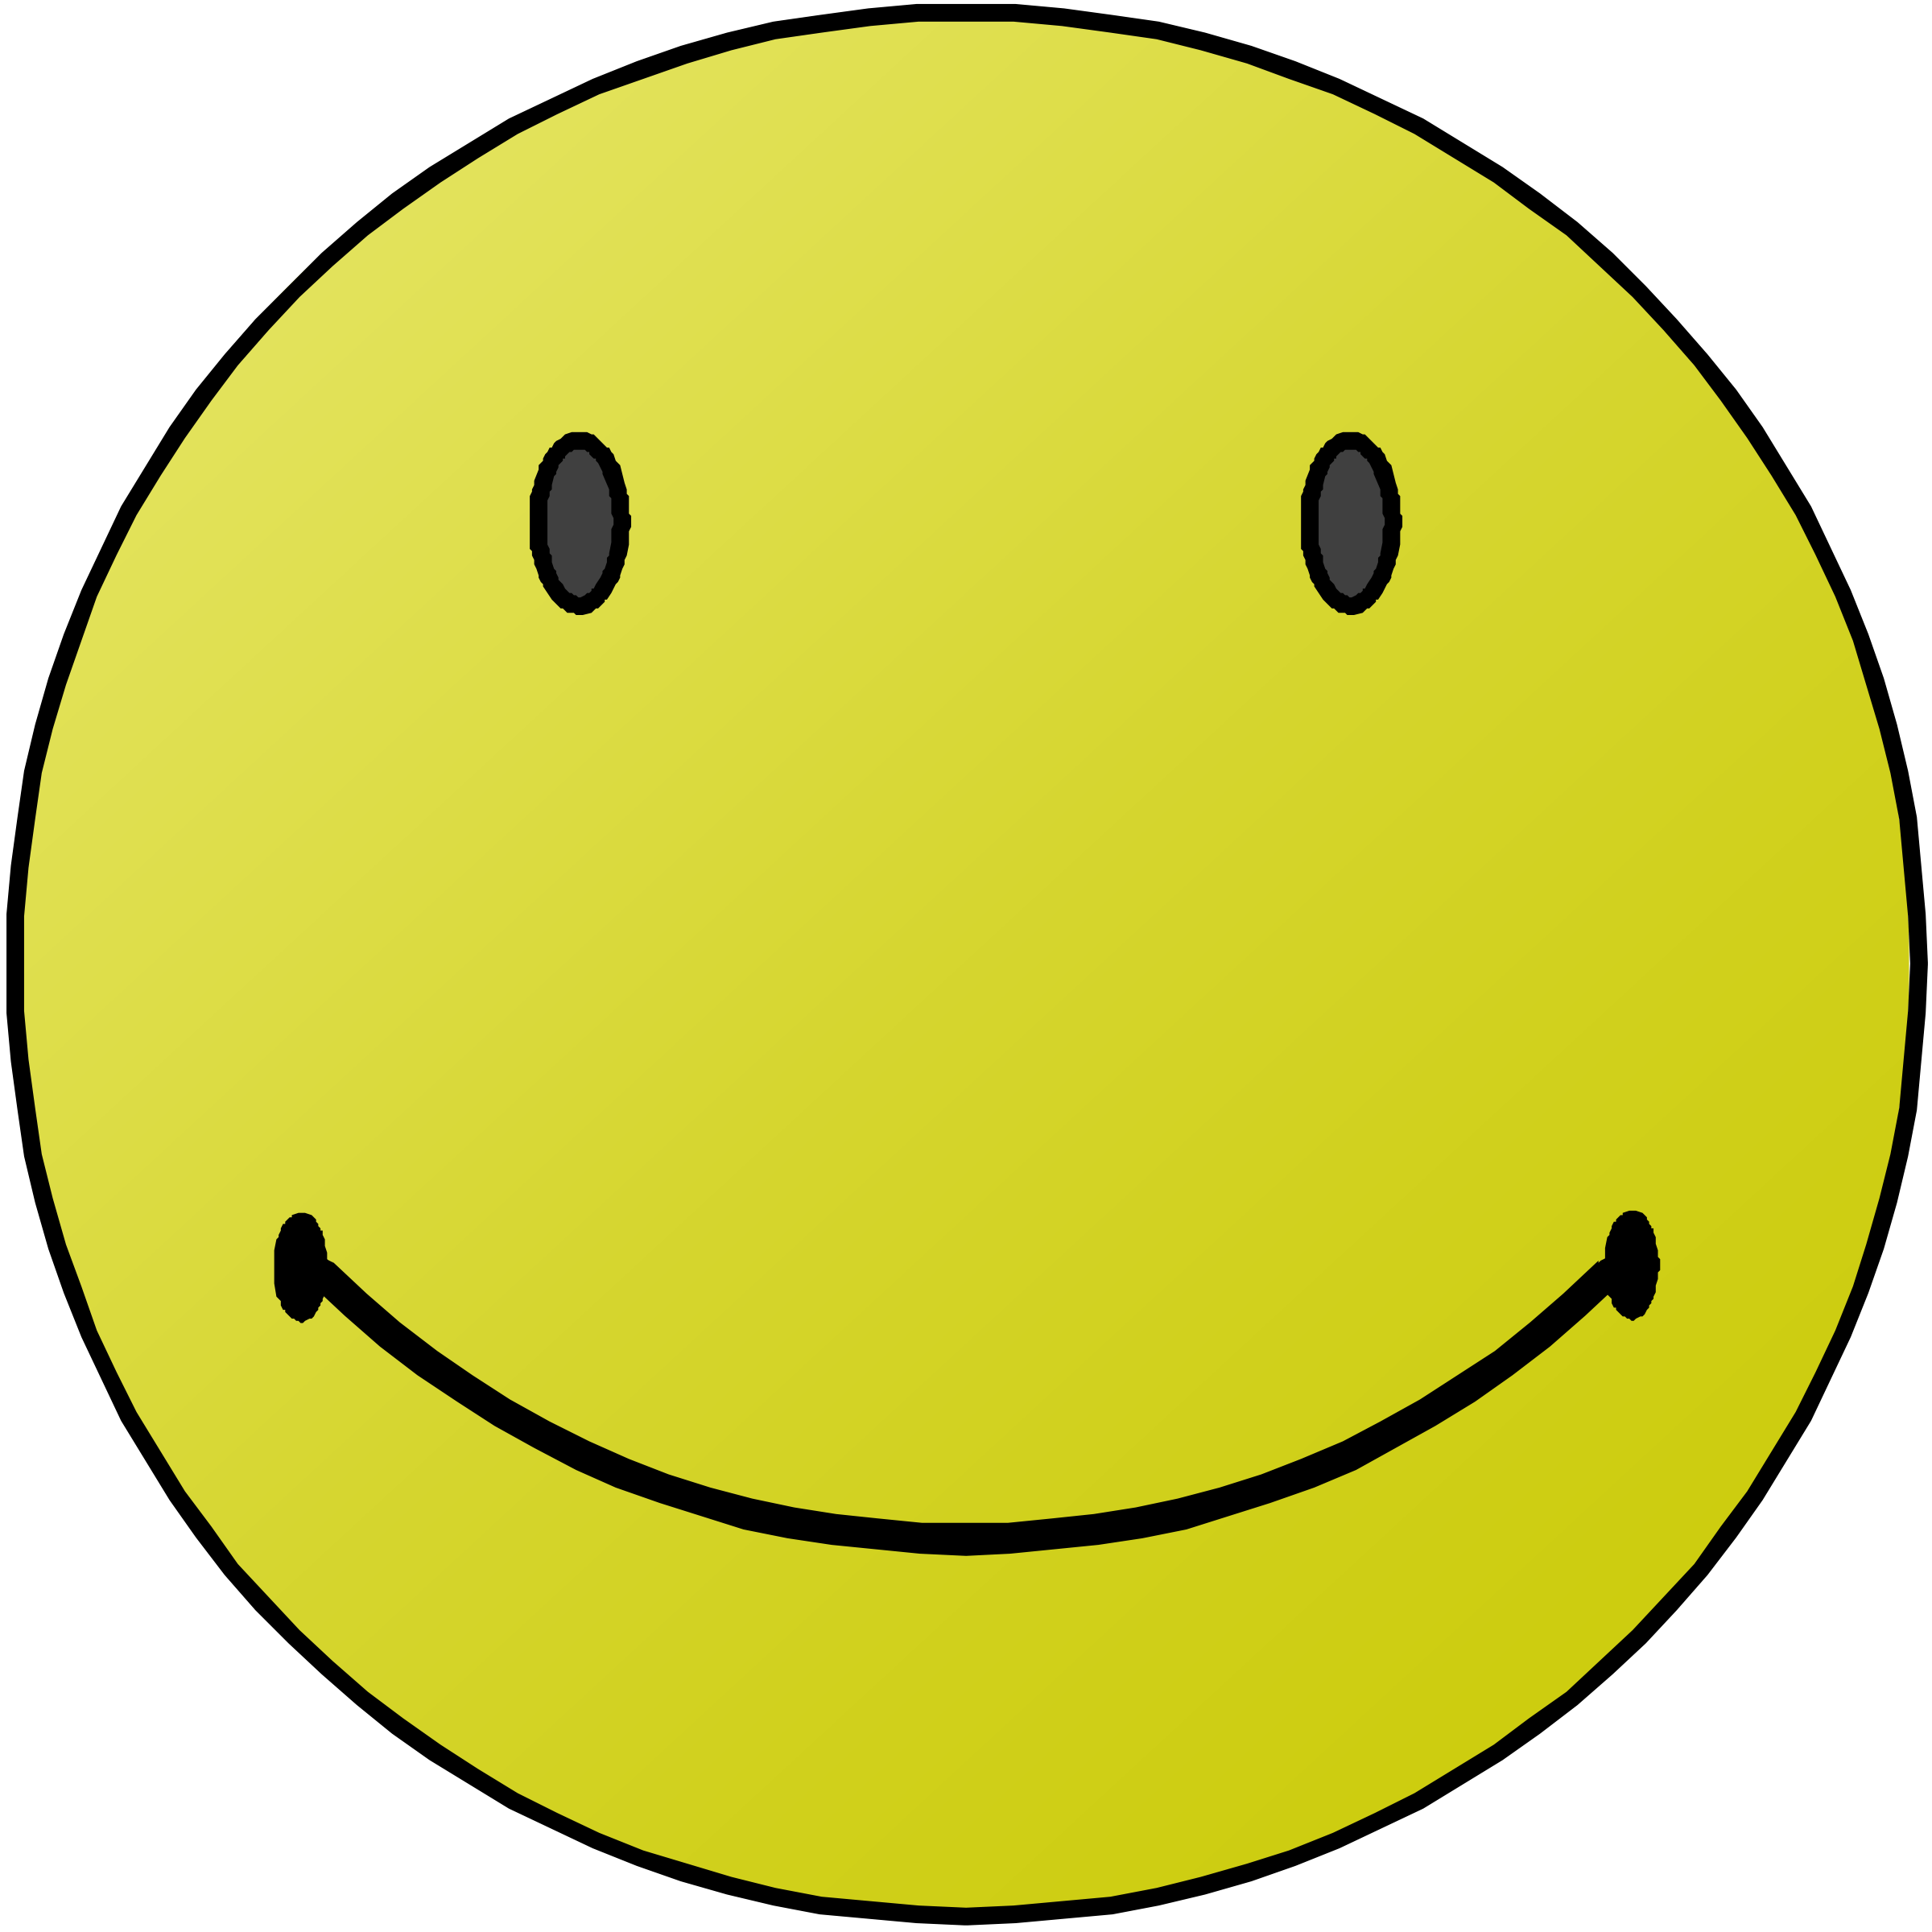 Smiley face happy face clipart free clipart images